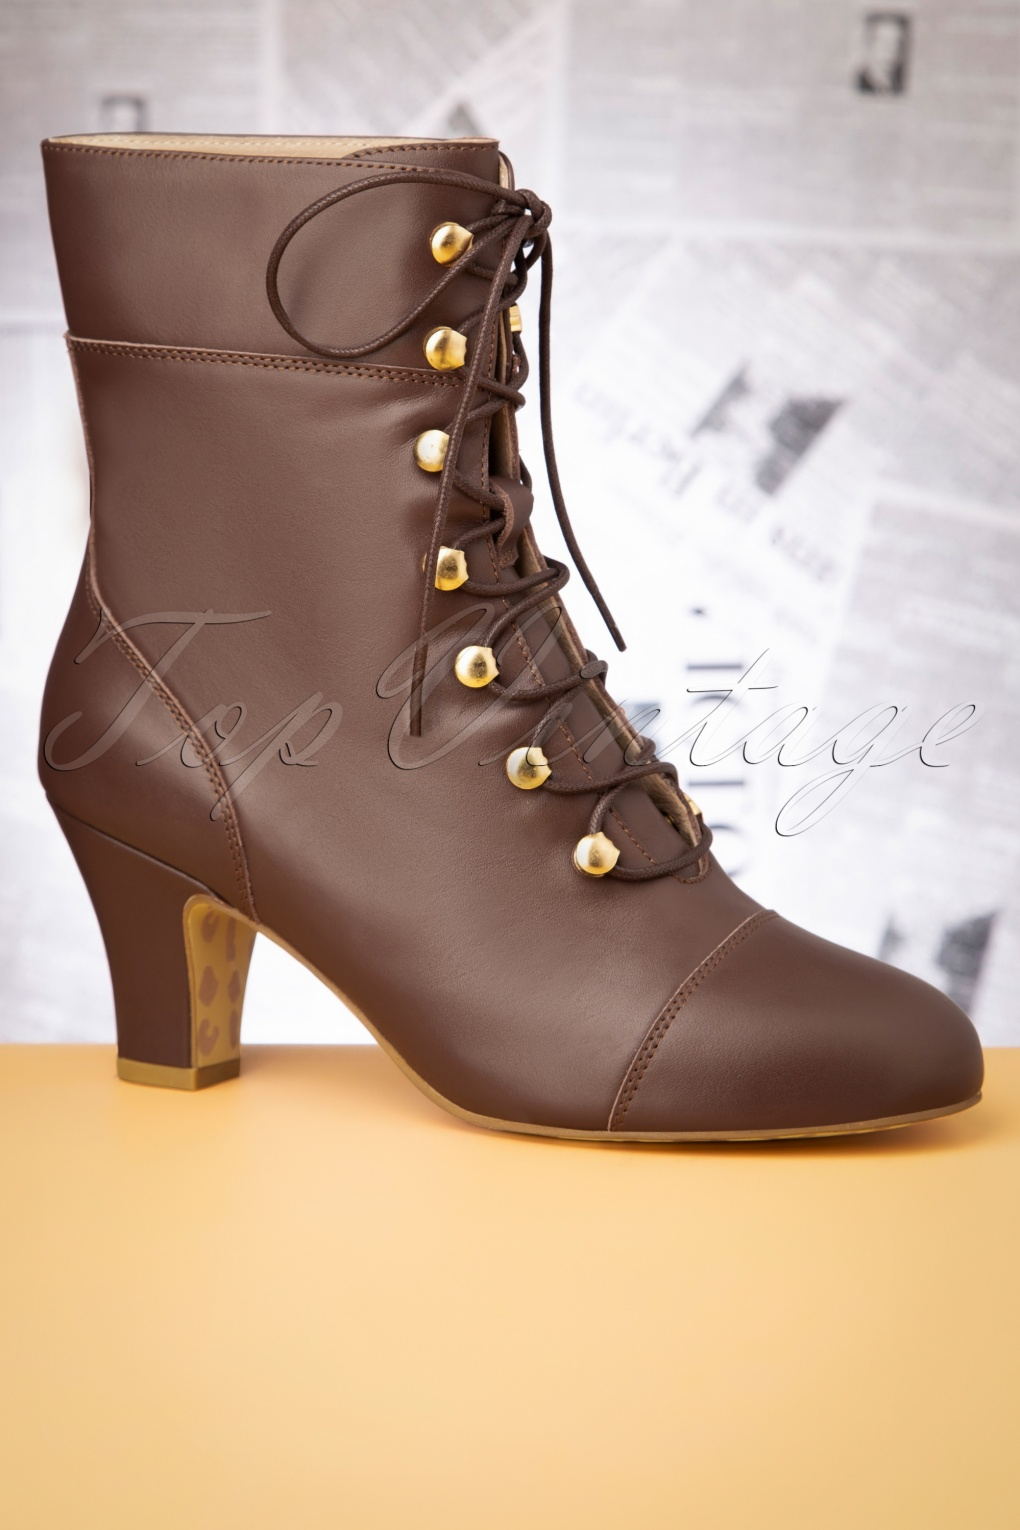 1940s Style Shoes, 40s Shoes 40s Ava On My Way Lace Up Booties in Brown £125.21 AT vintagedancer.com